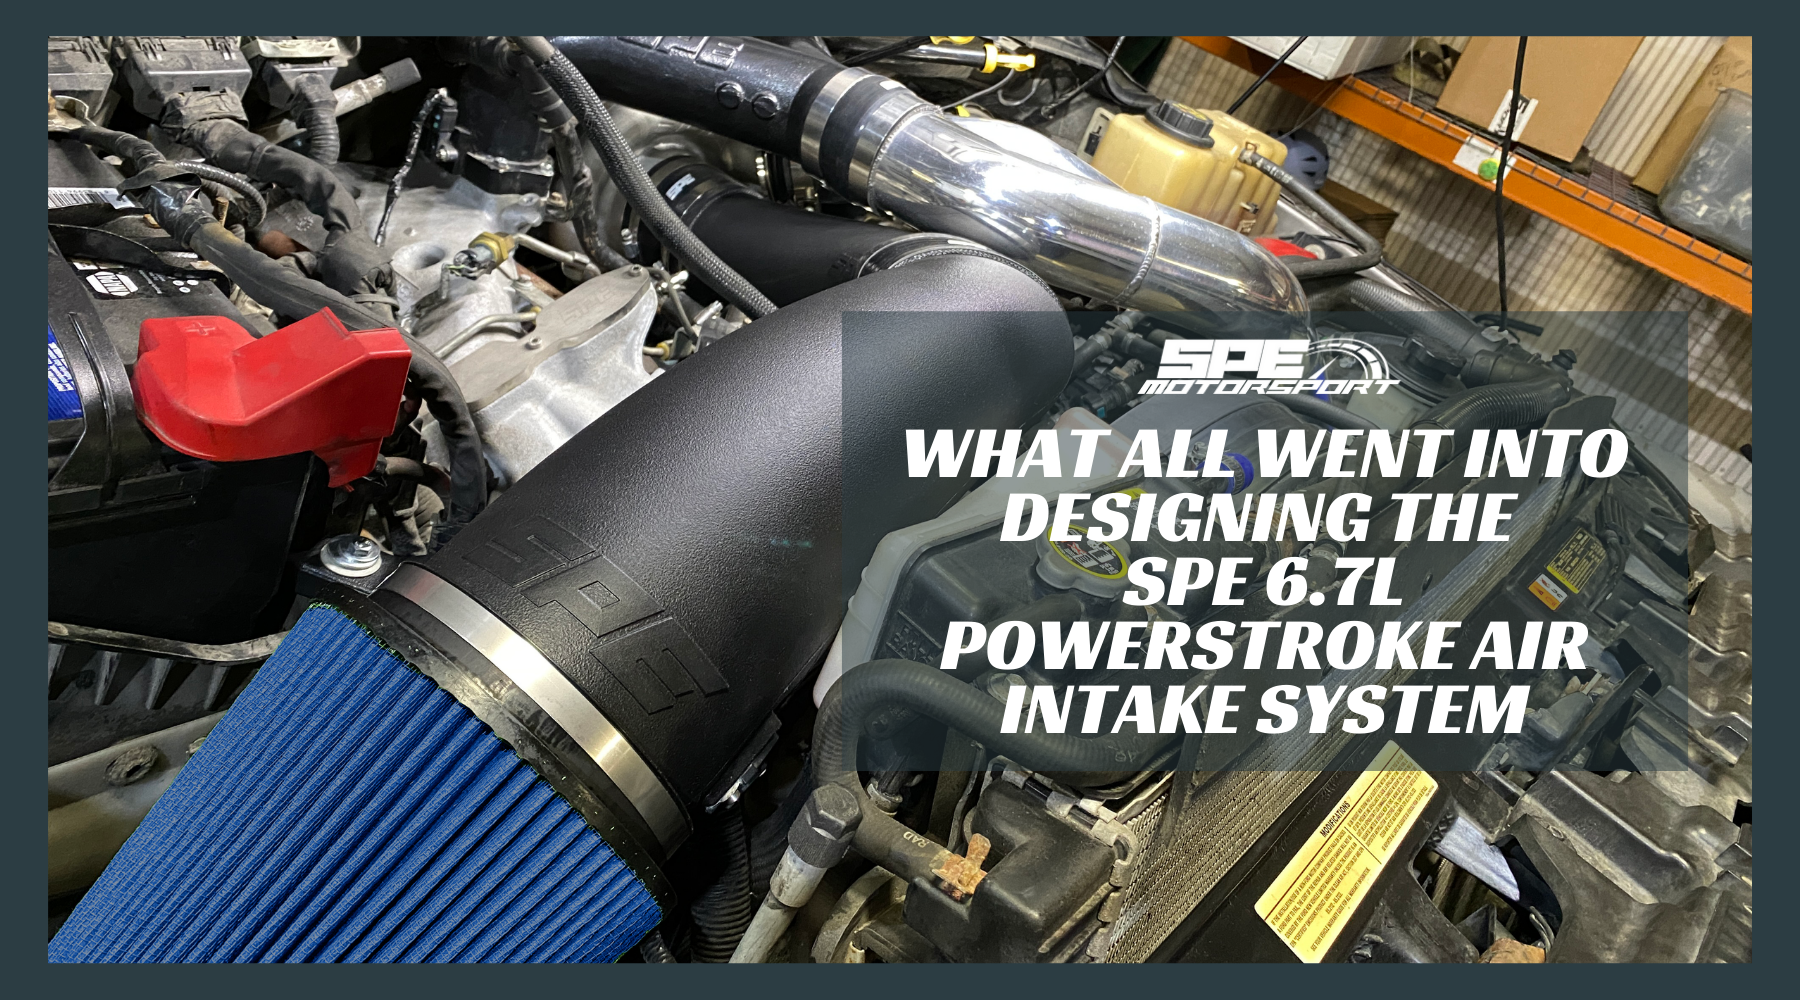 What All Went Into Designing the SPE 6.7L Powerstroke Air Intake System